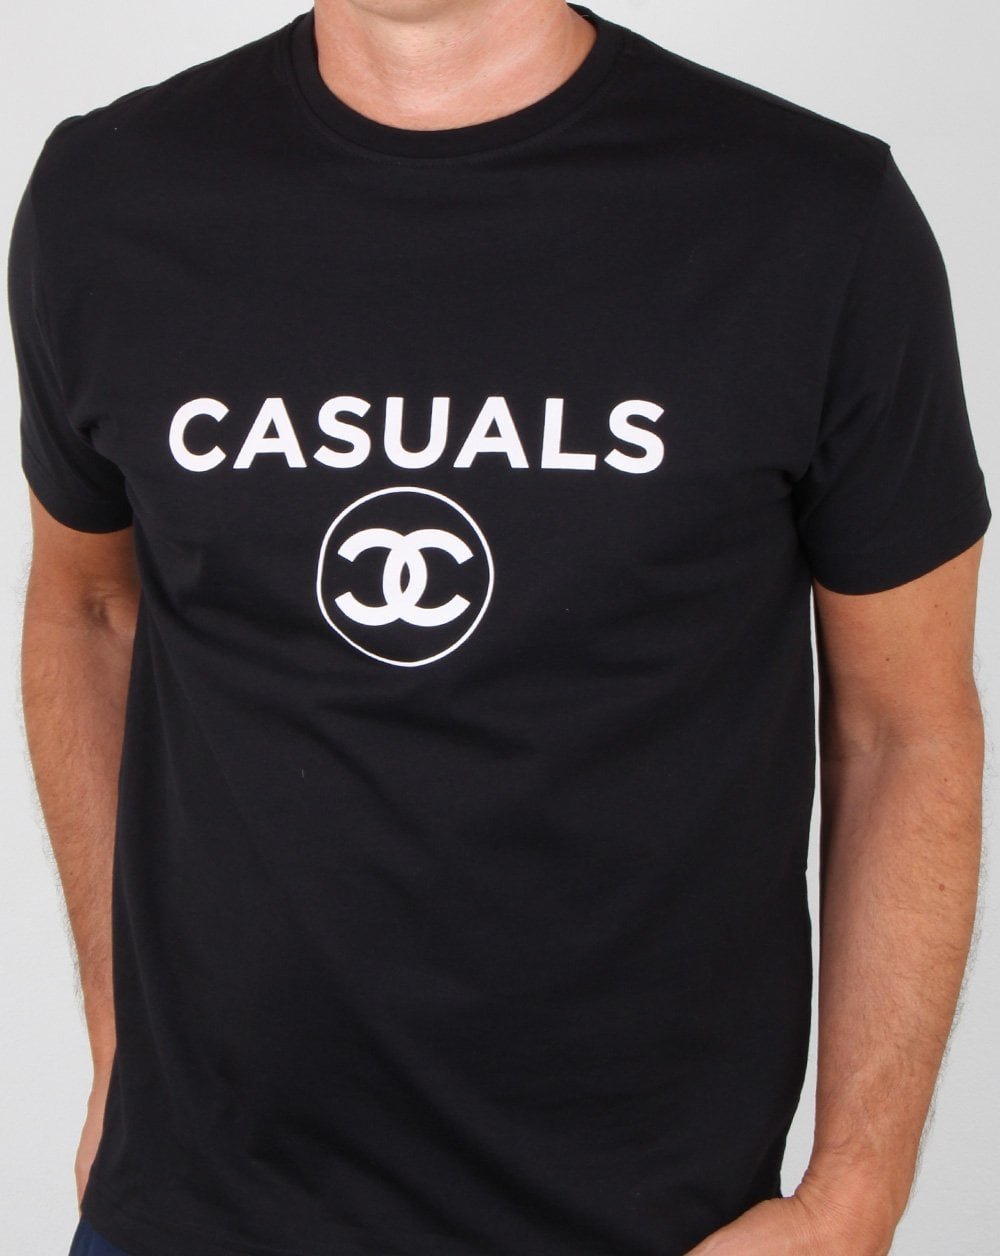 80s casuals t-shirt